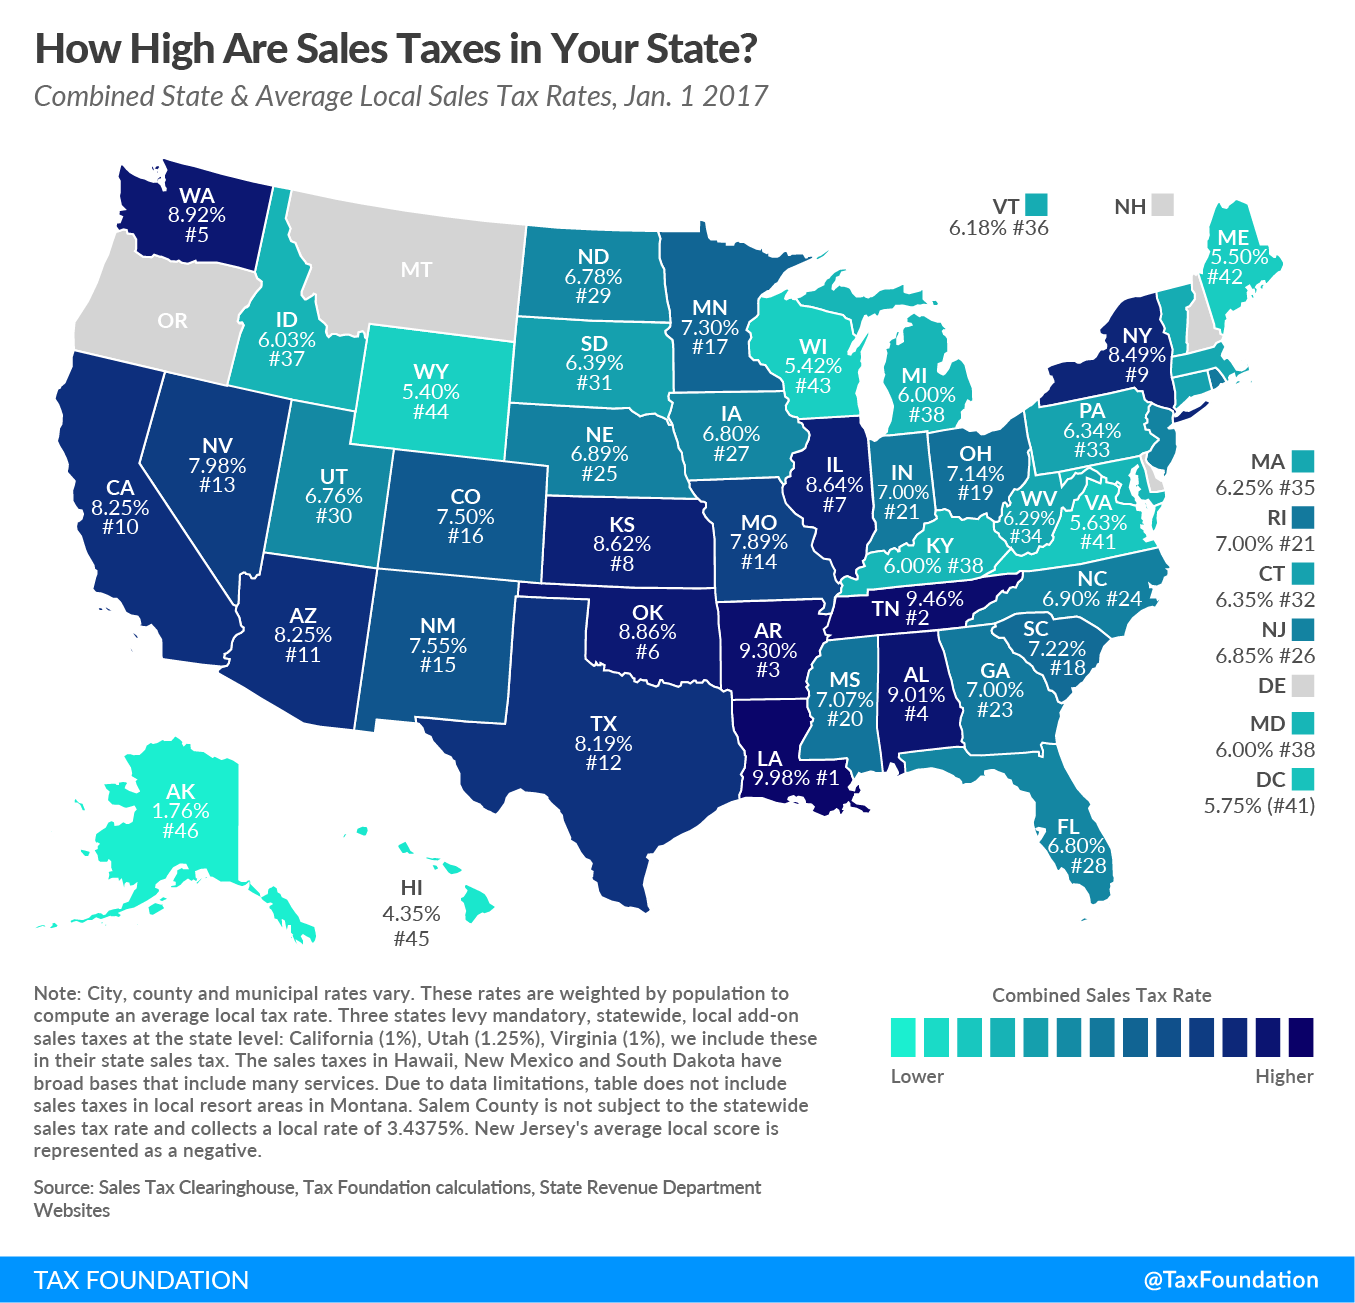 Alabama Property Tax Rates